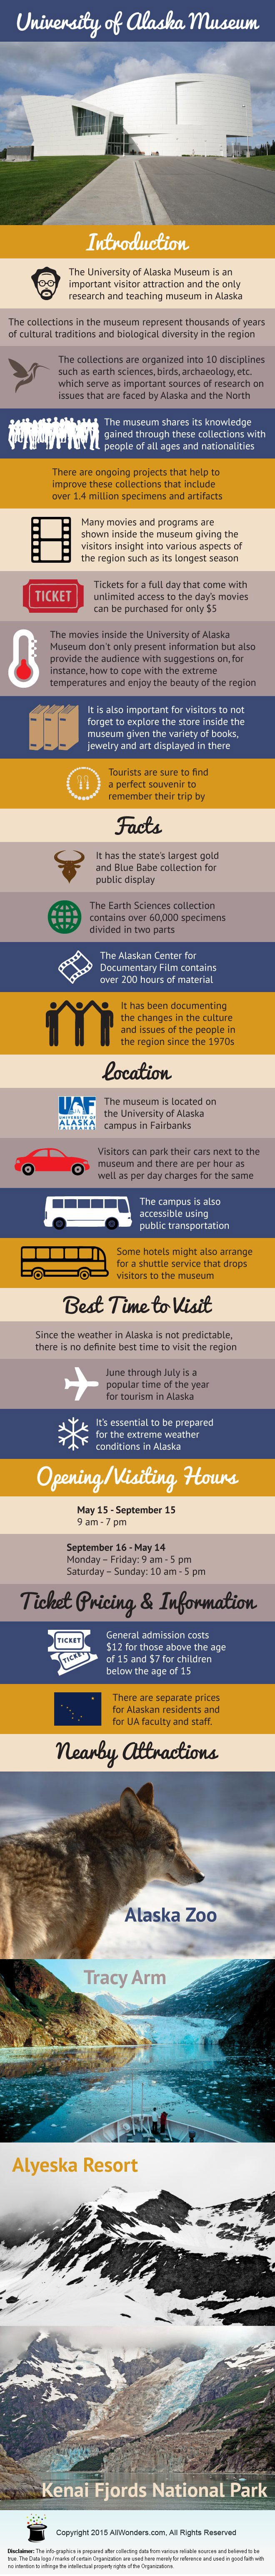 University of Alaska Museum Of North Infographic